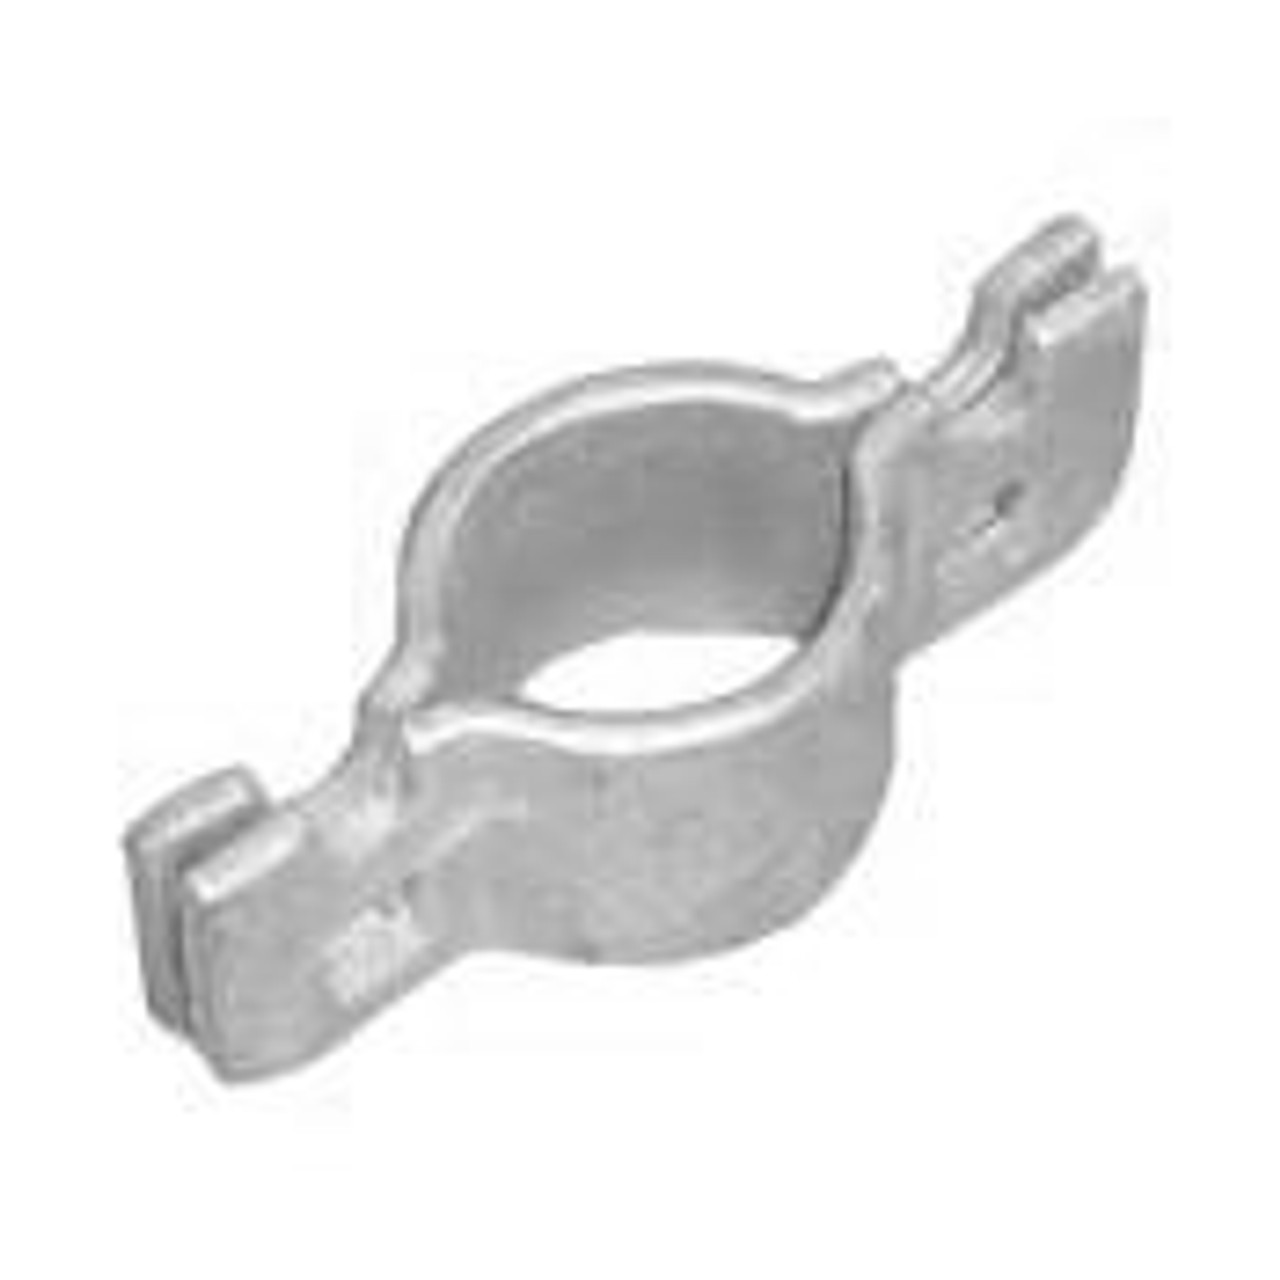 Galvanized Chain Link Fork Clamp